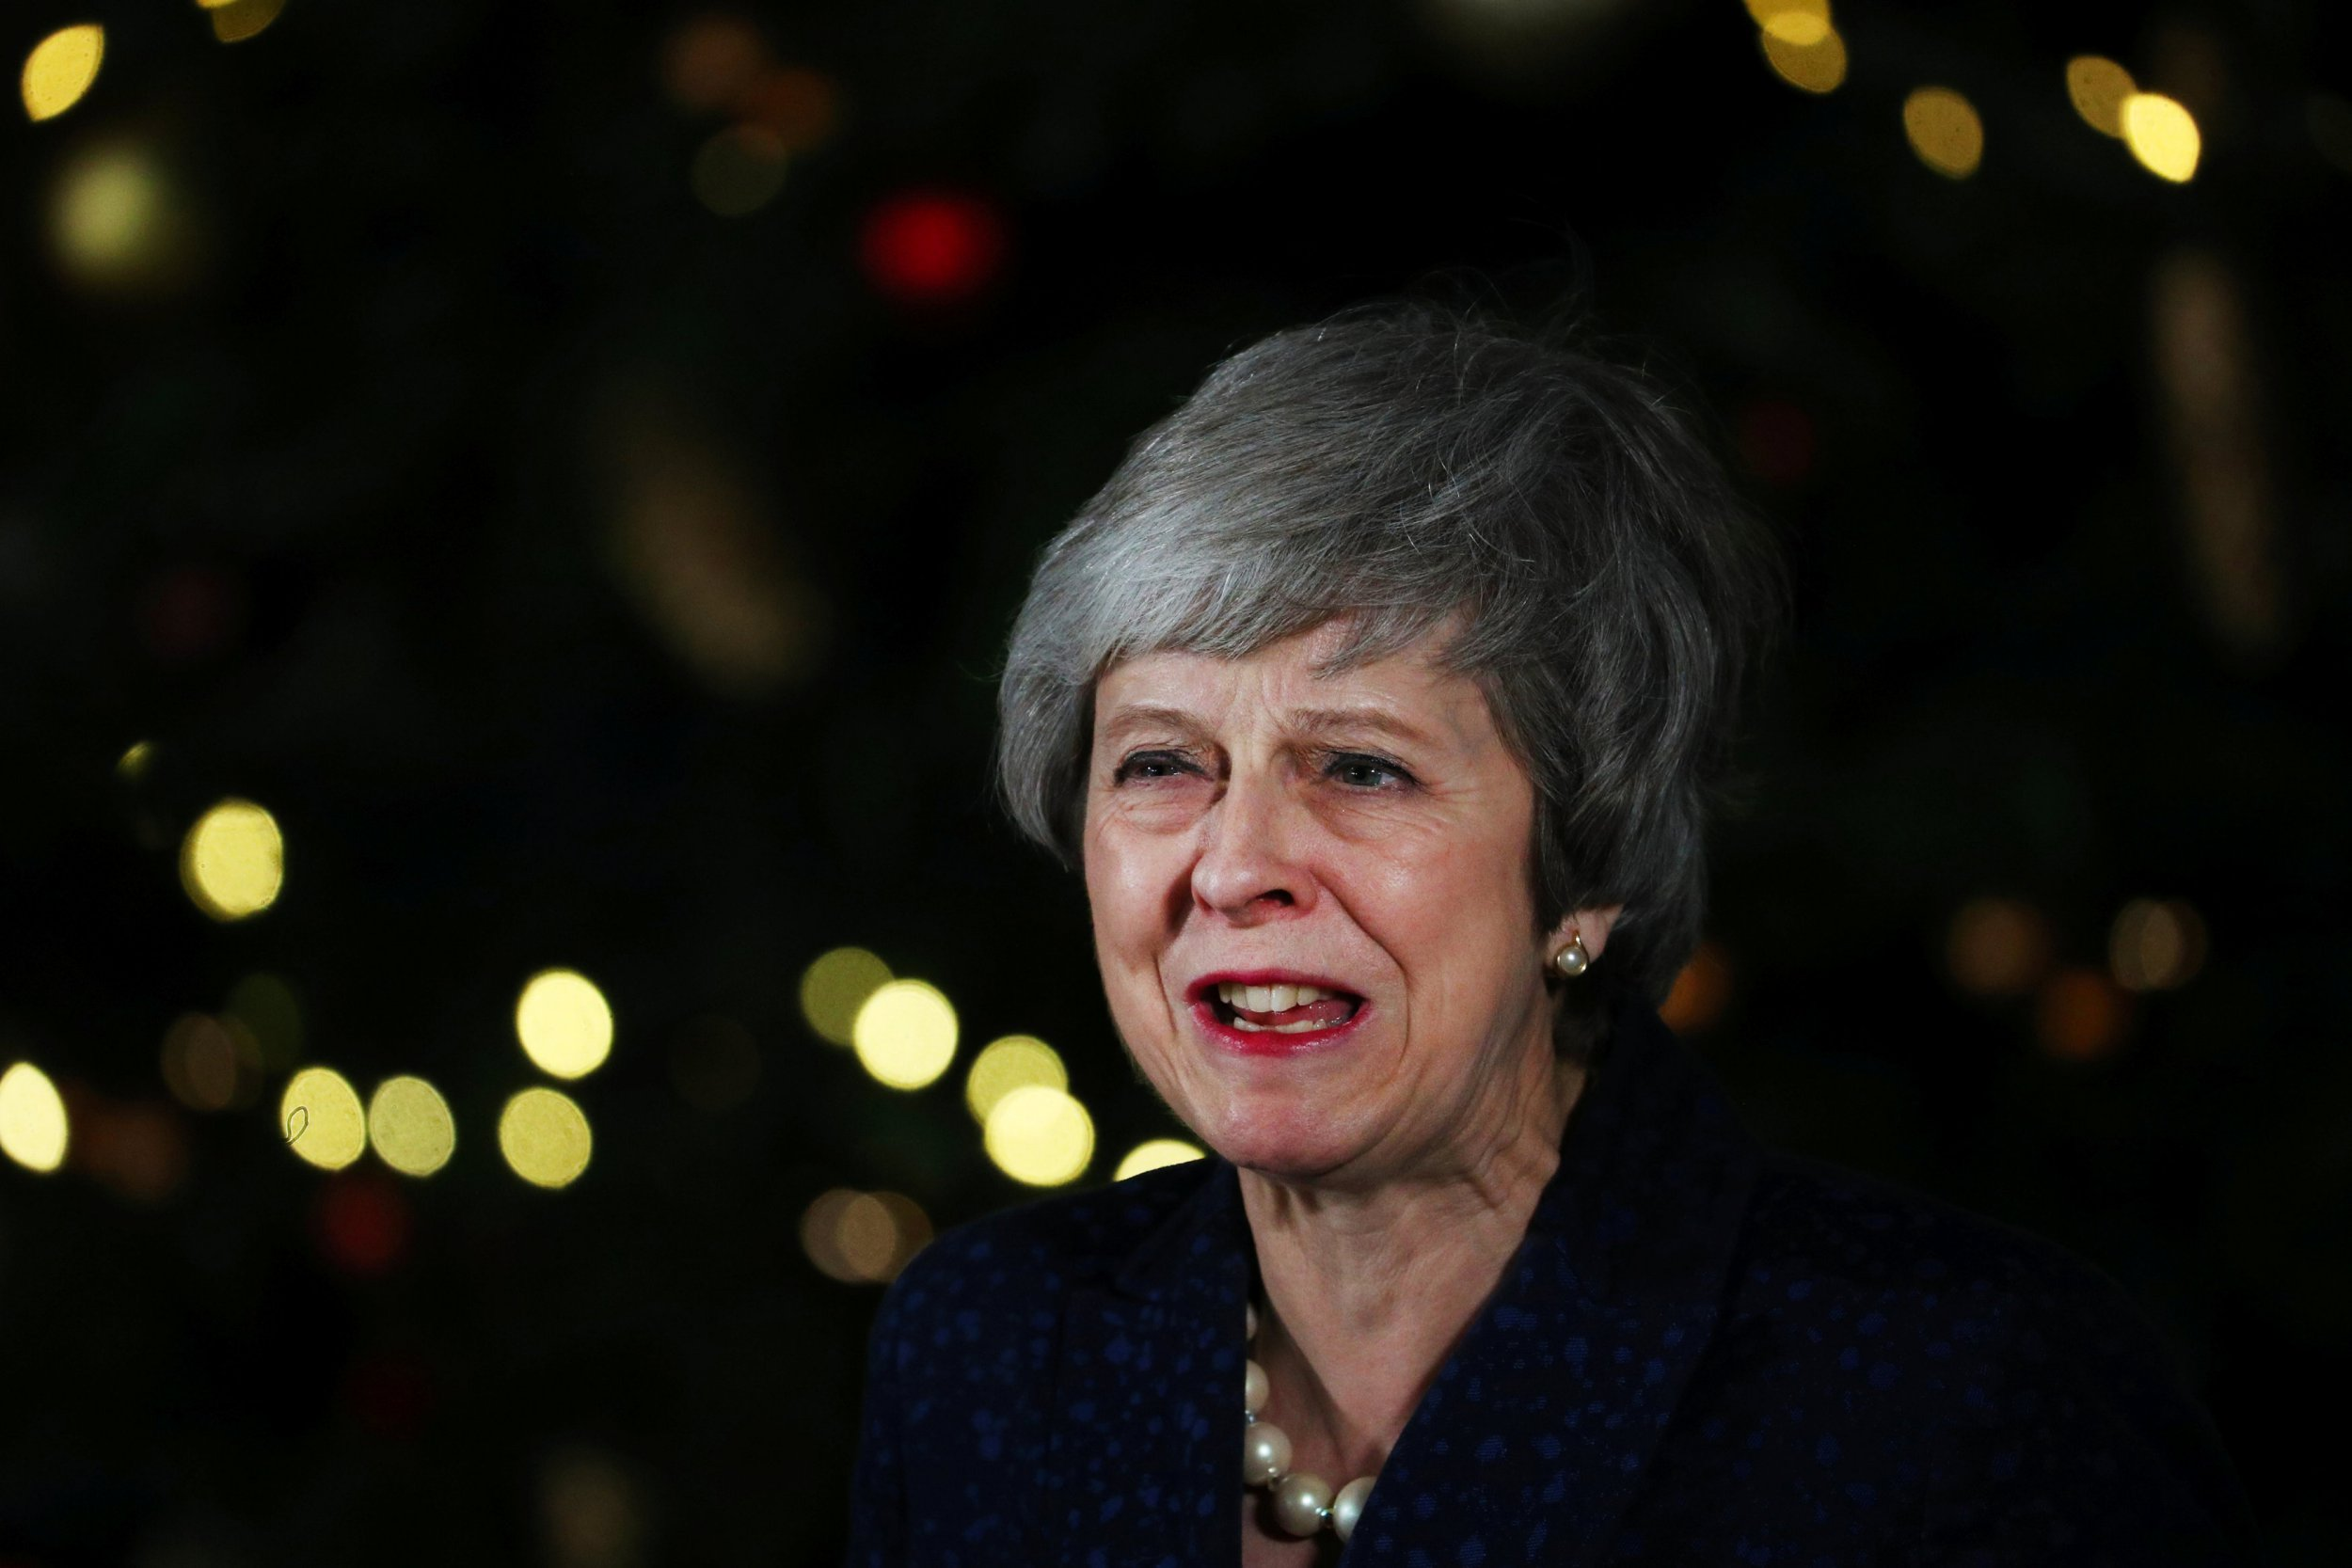 Britain's Prime Minister Theresa May speaks outside 10 Downing Street after a confidence vote by Conservative Party Members of Parliament (MPs), in London, Britain December 12, 2018. REUTERS/Hannah McKay